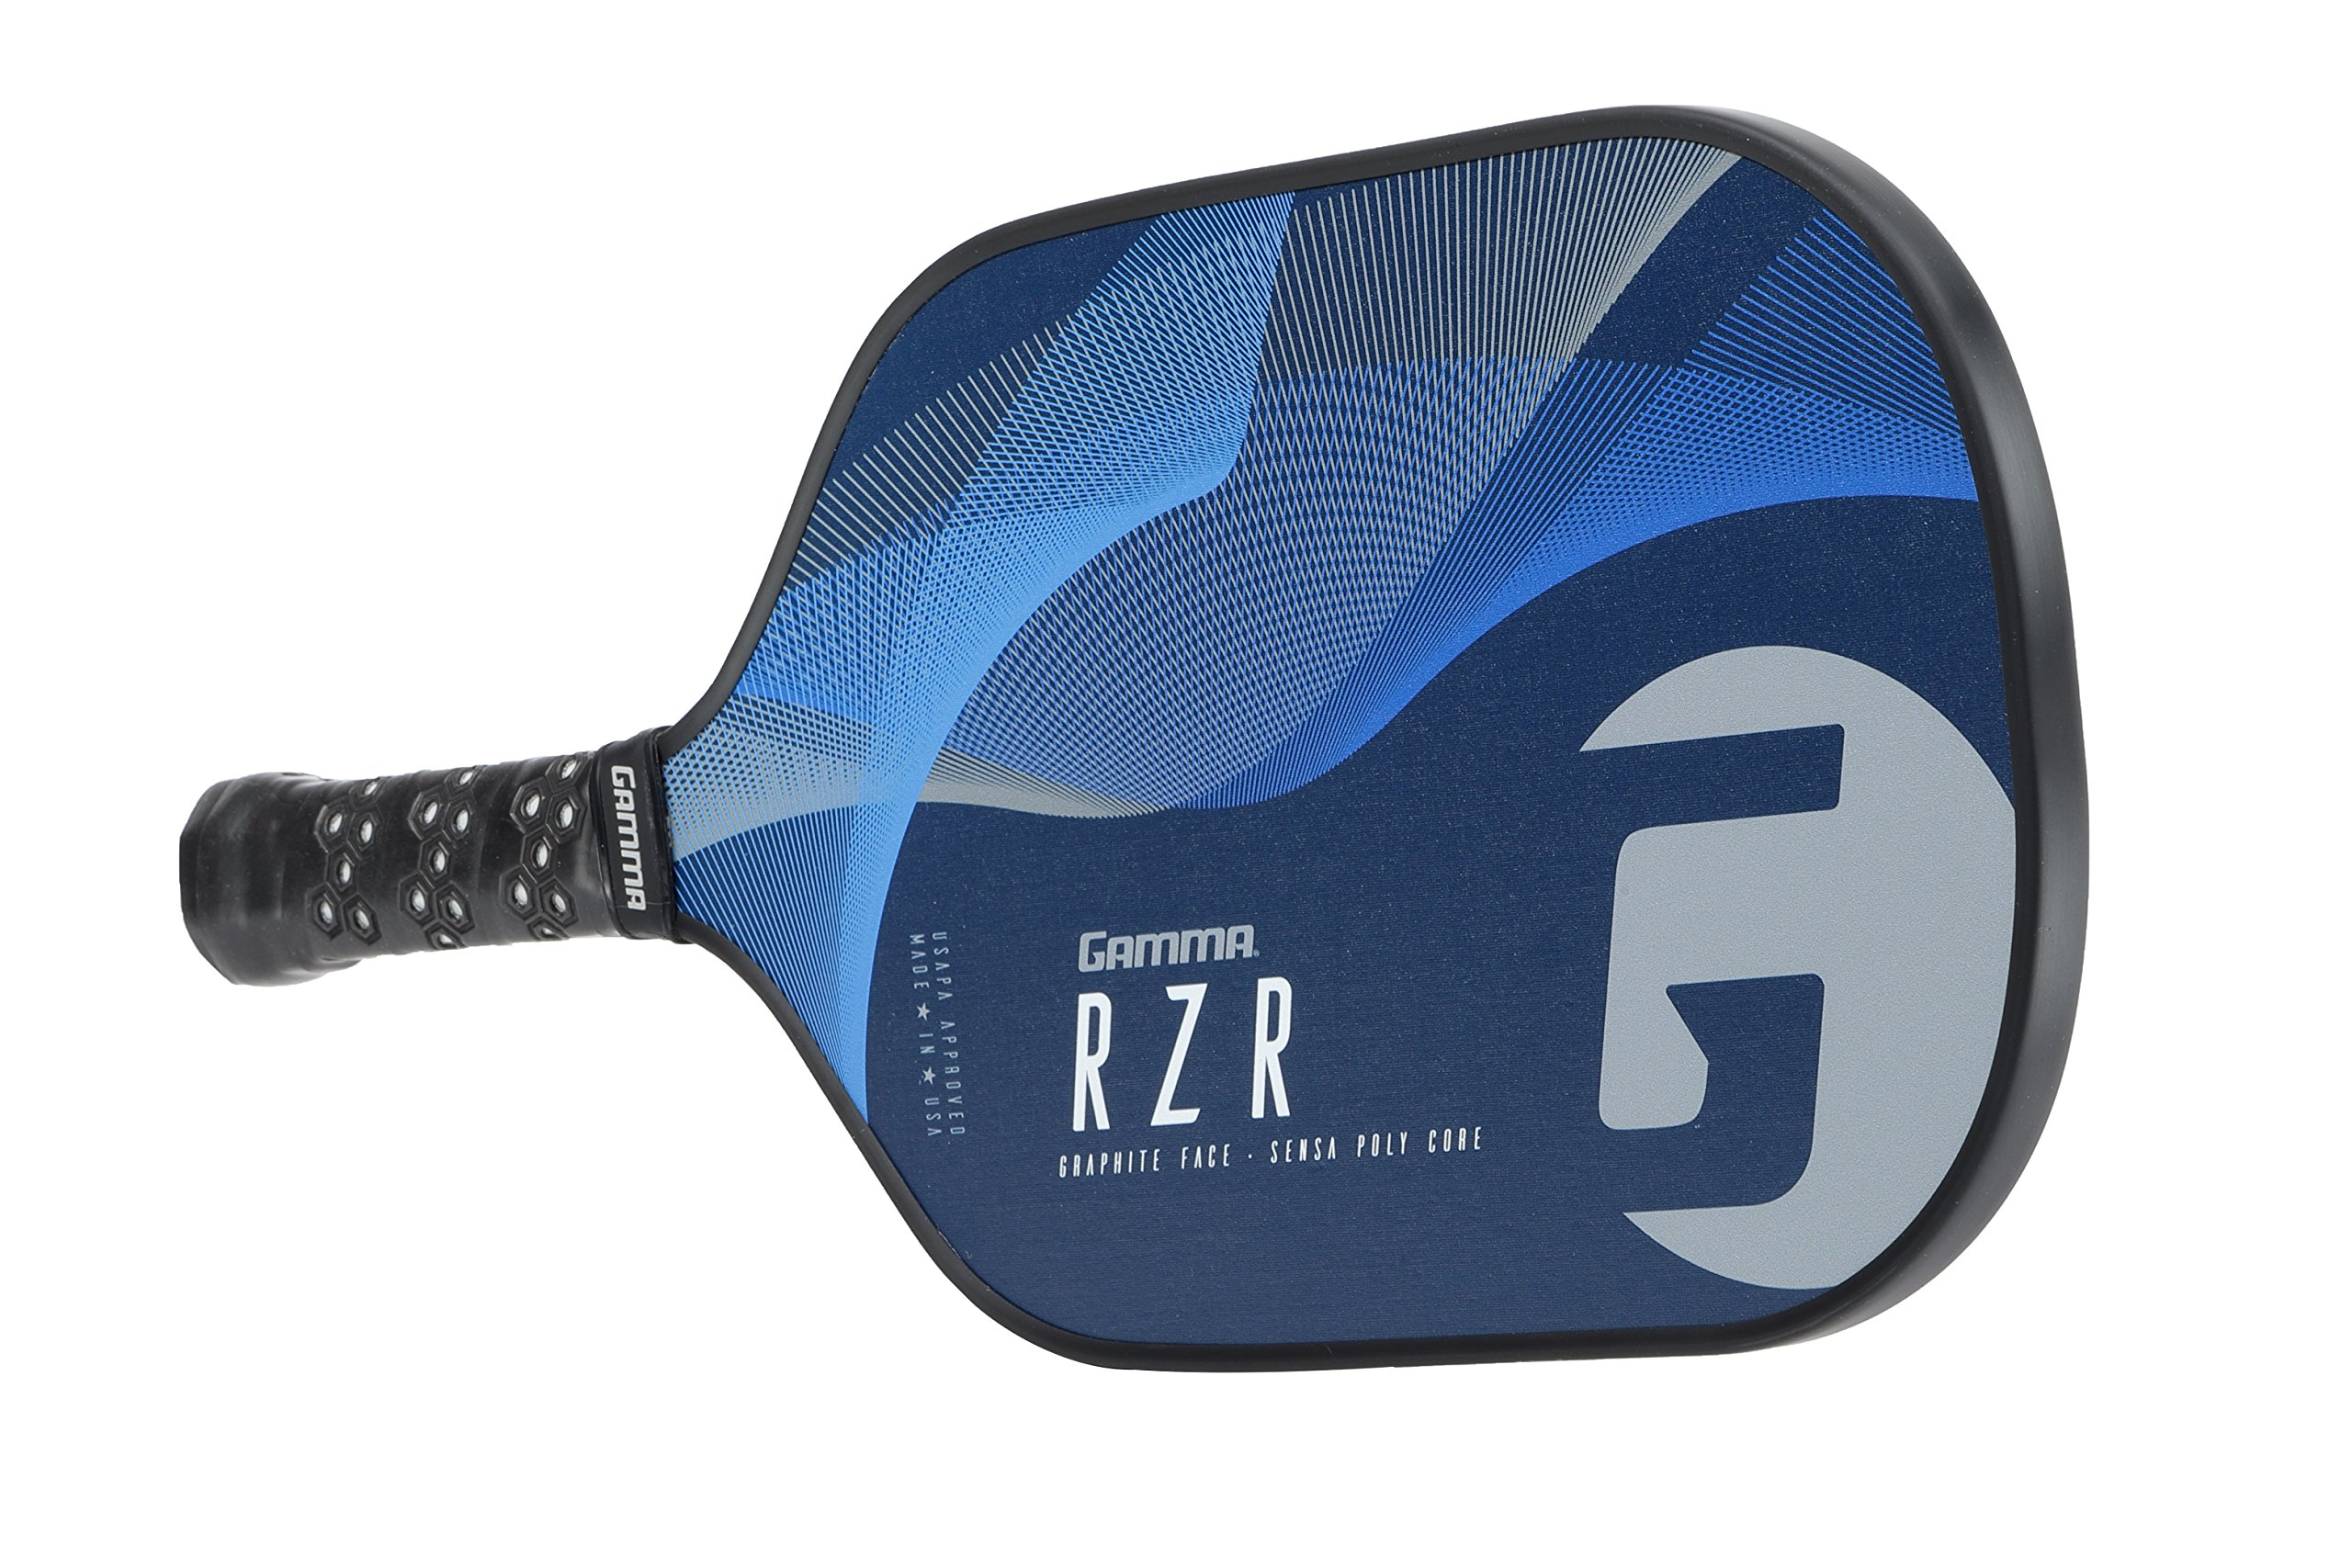 Gamma RZR Composite Pickleball Paddle: Pickle Ball Paddles for Indoor & Outdoor Play - USAPA Approved Racquet for Adults & Kids - Blue/Grey by Gamma (Image #6)